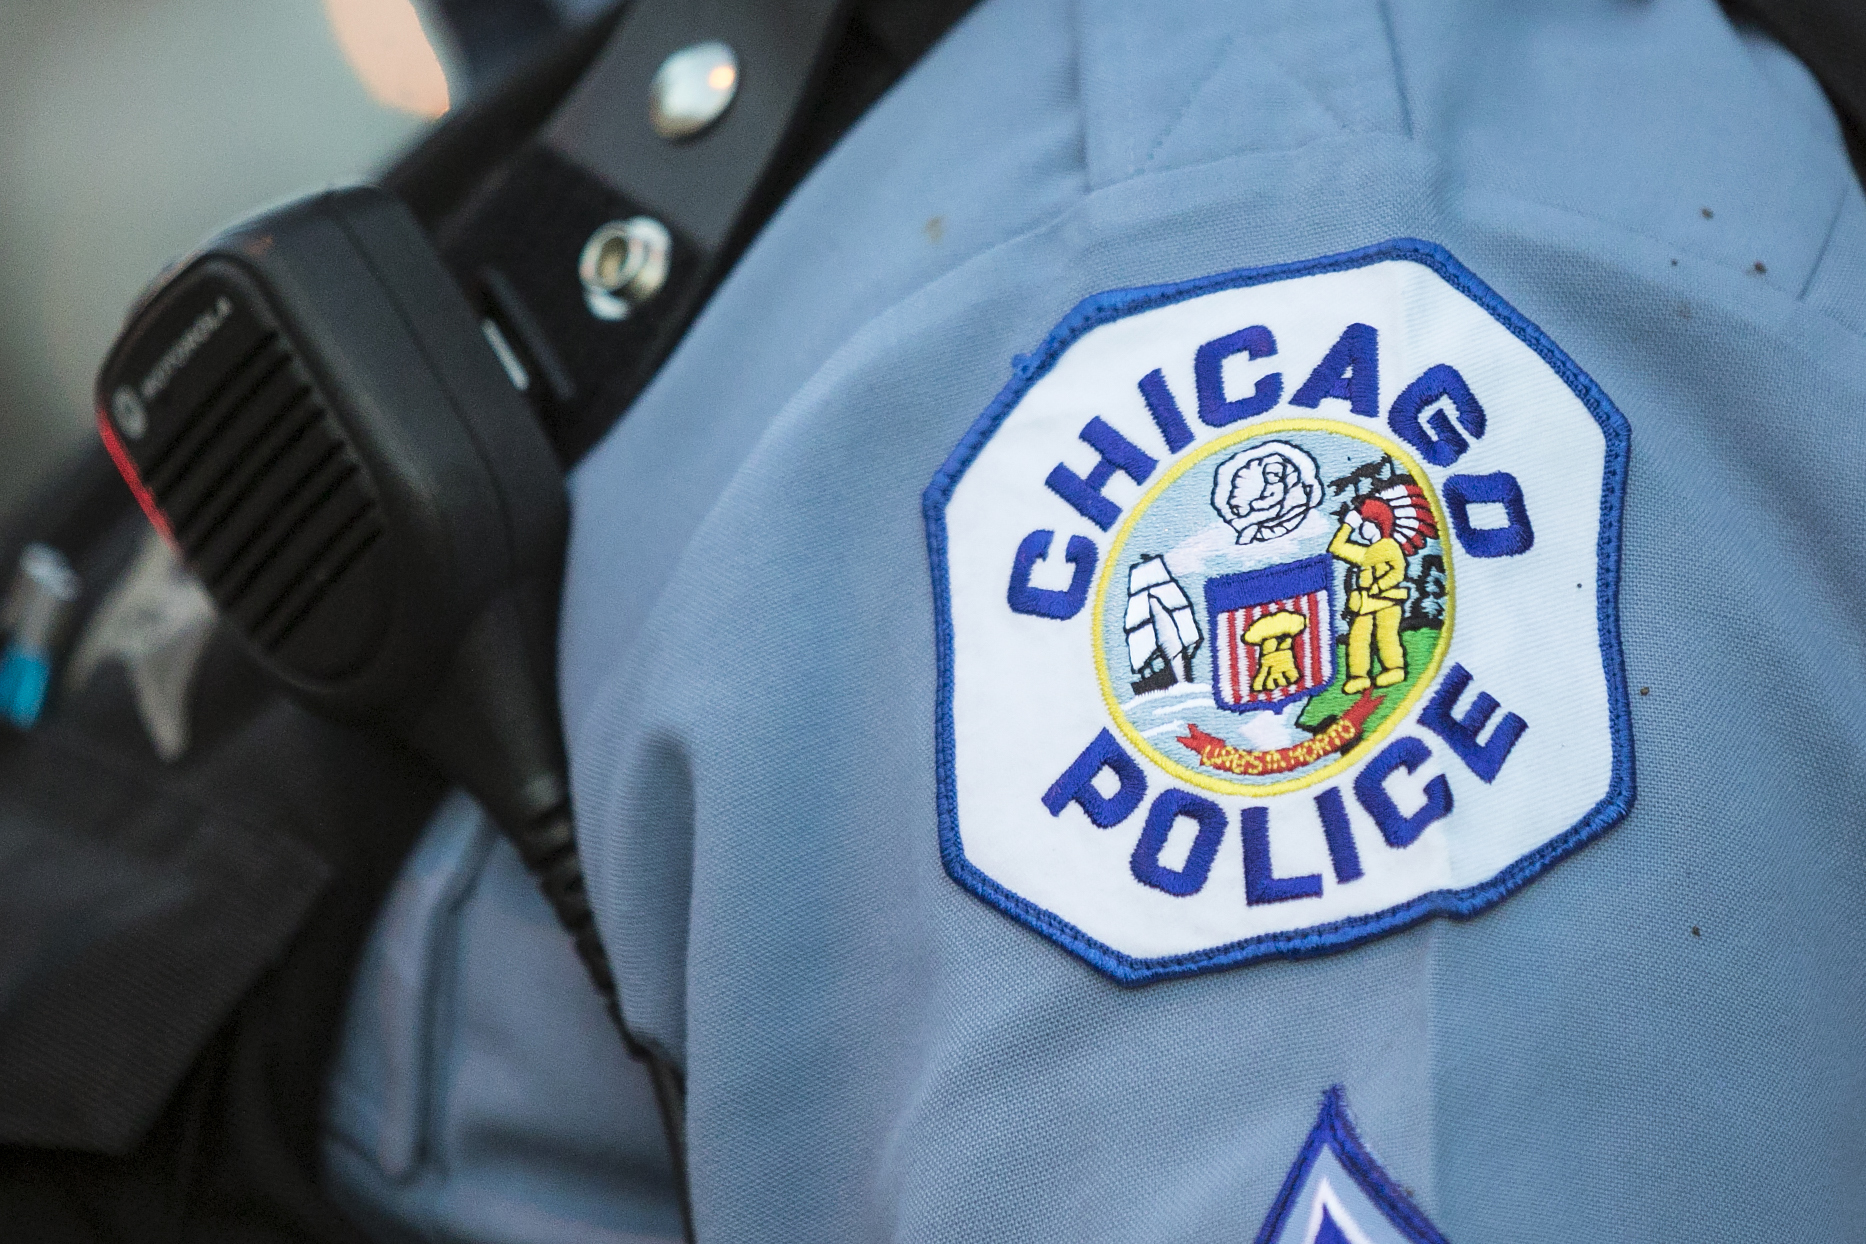 Police are warning residents about a series of strong-arm robberies on the North Side.